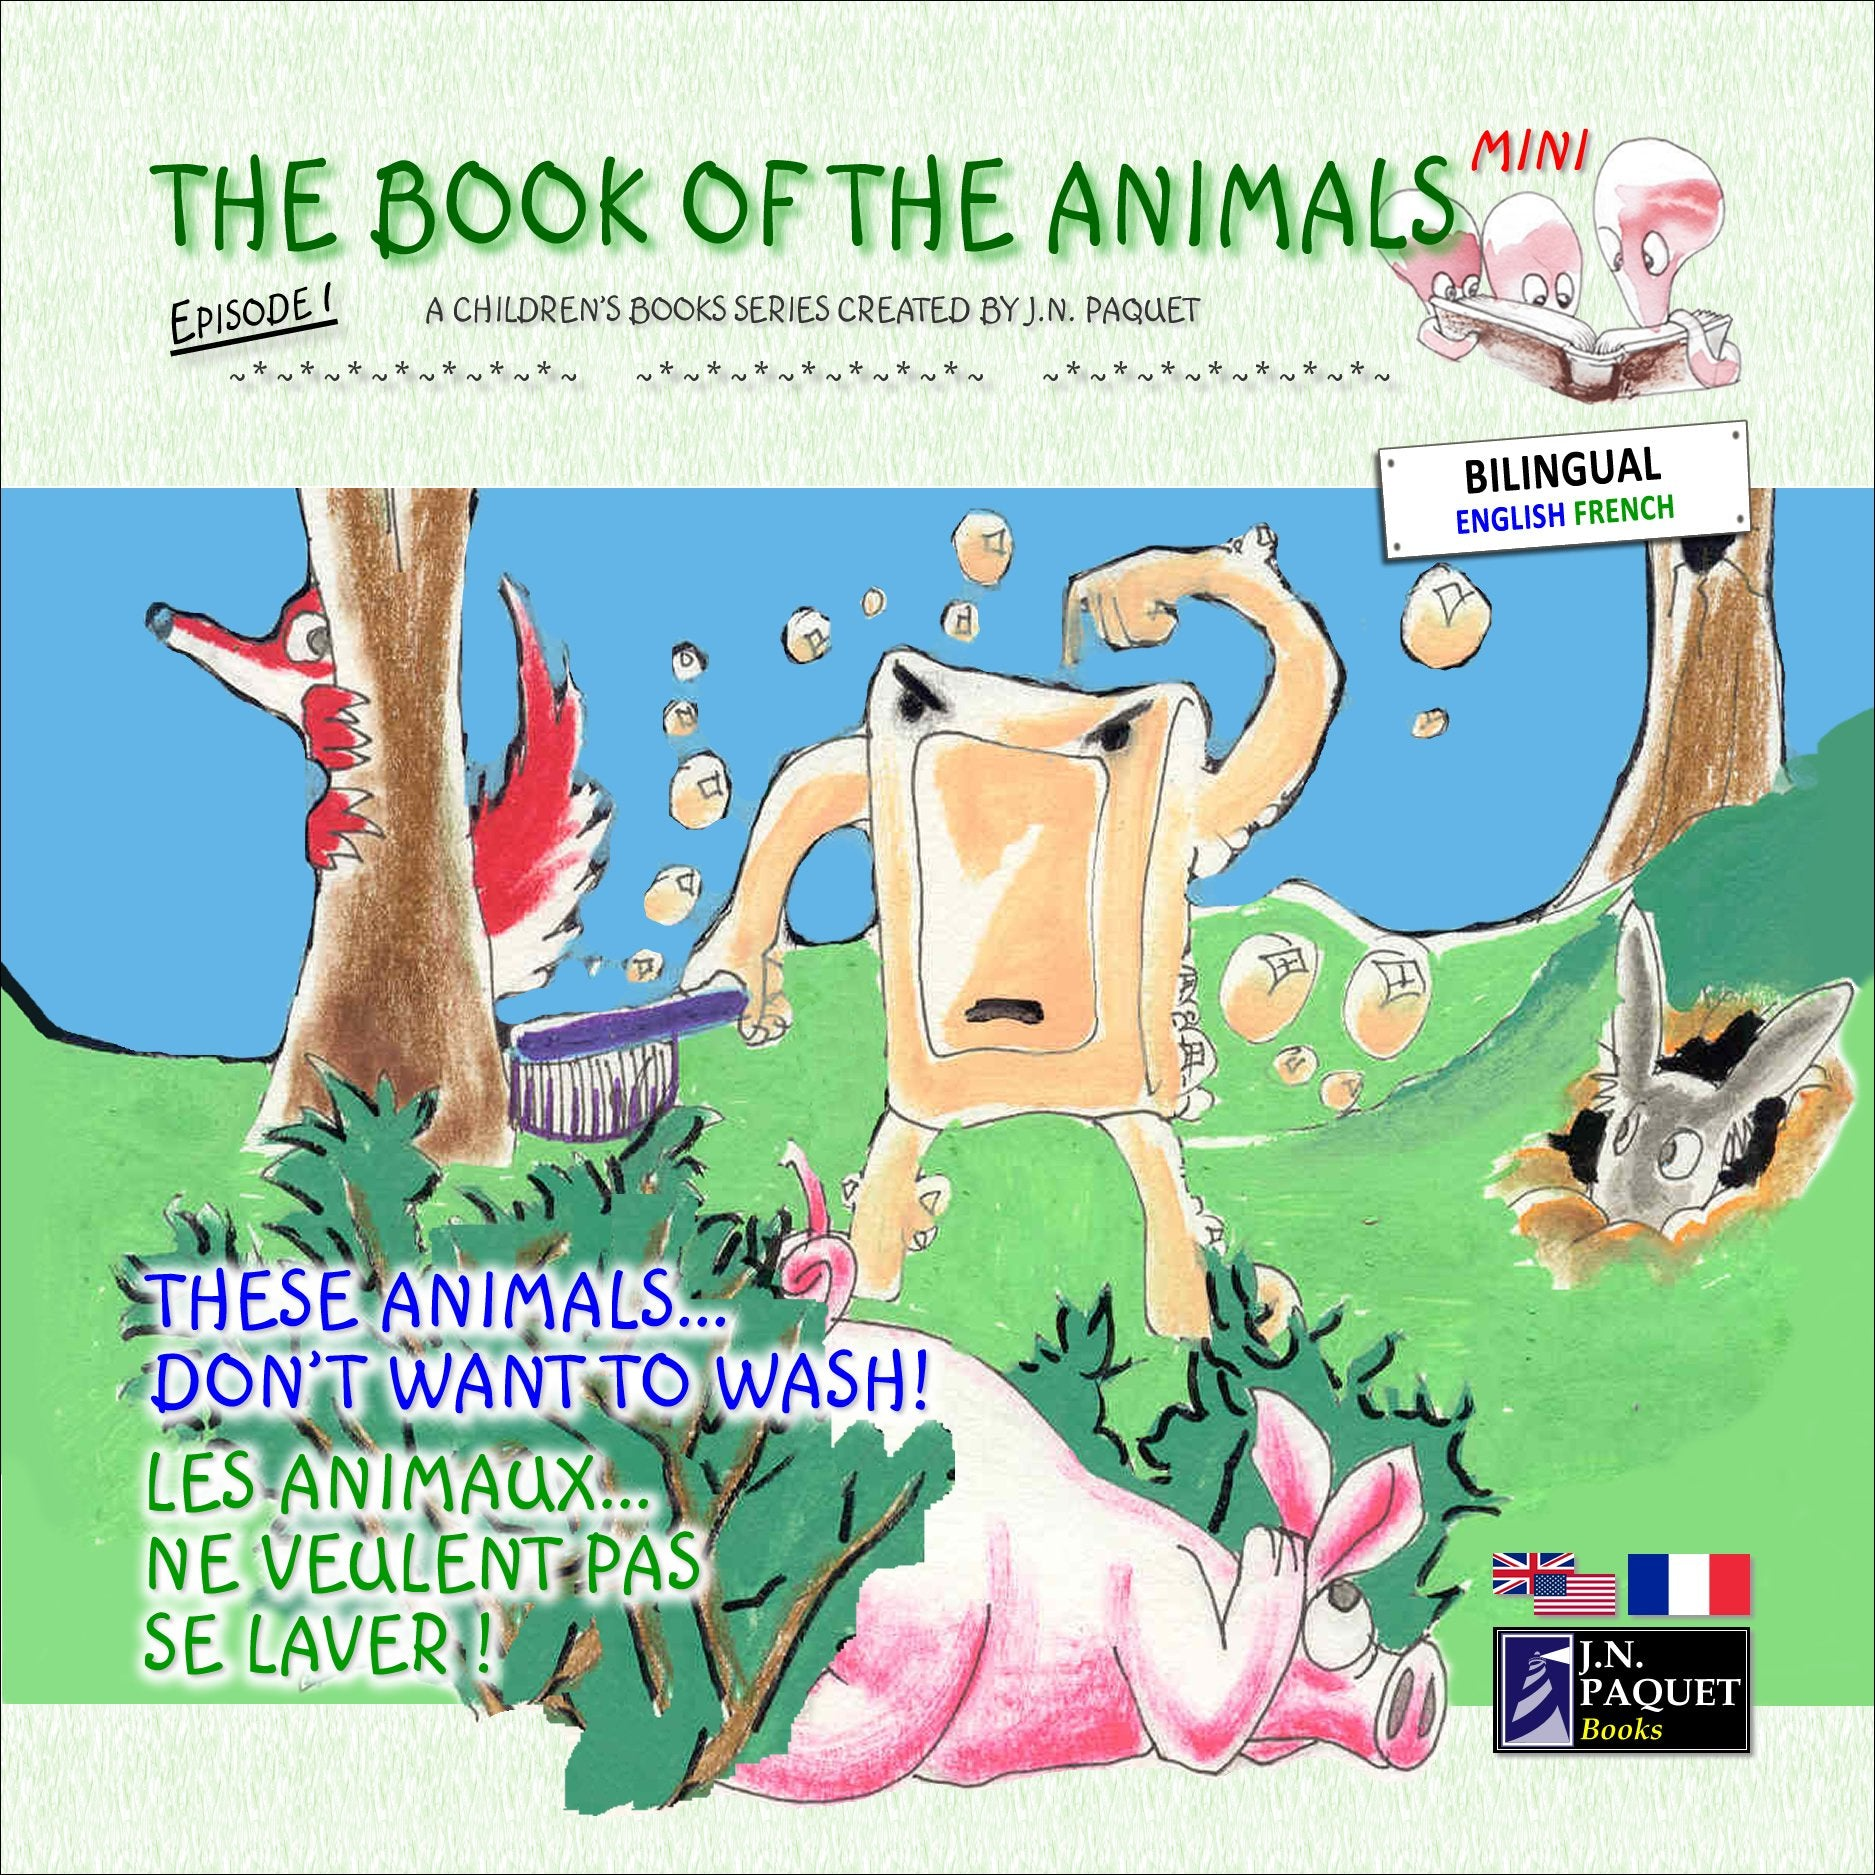 The Book of The Animals - Mini - Episode 1 (Bilingual English-French)